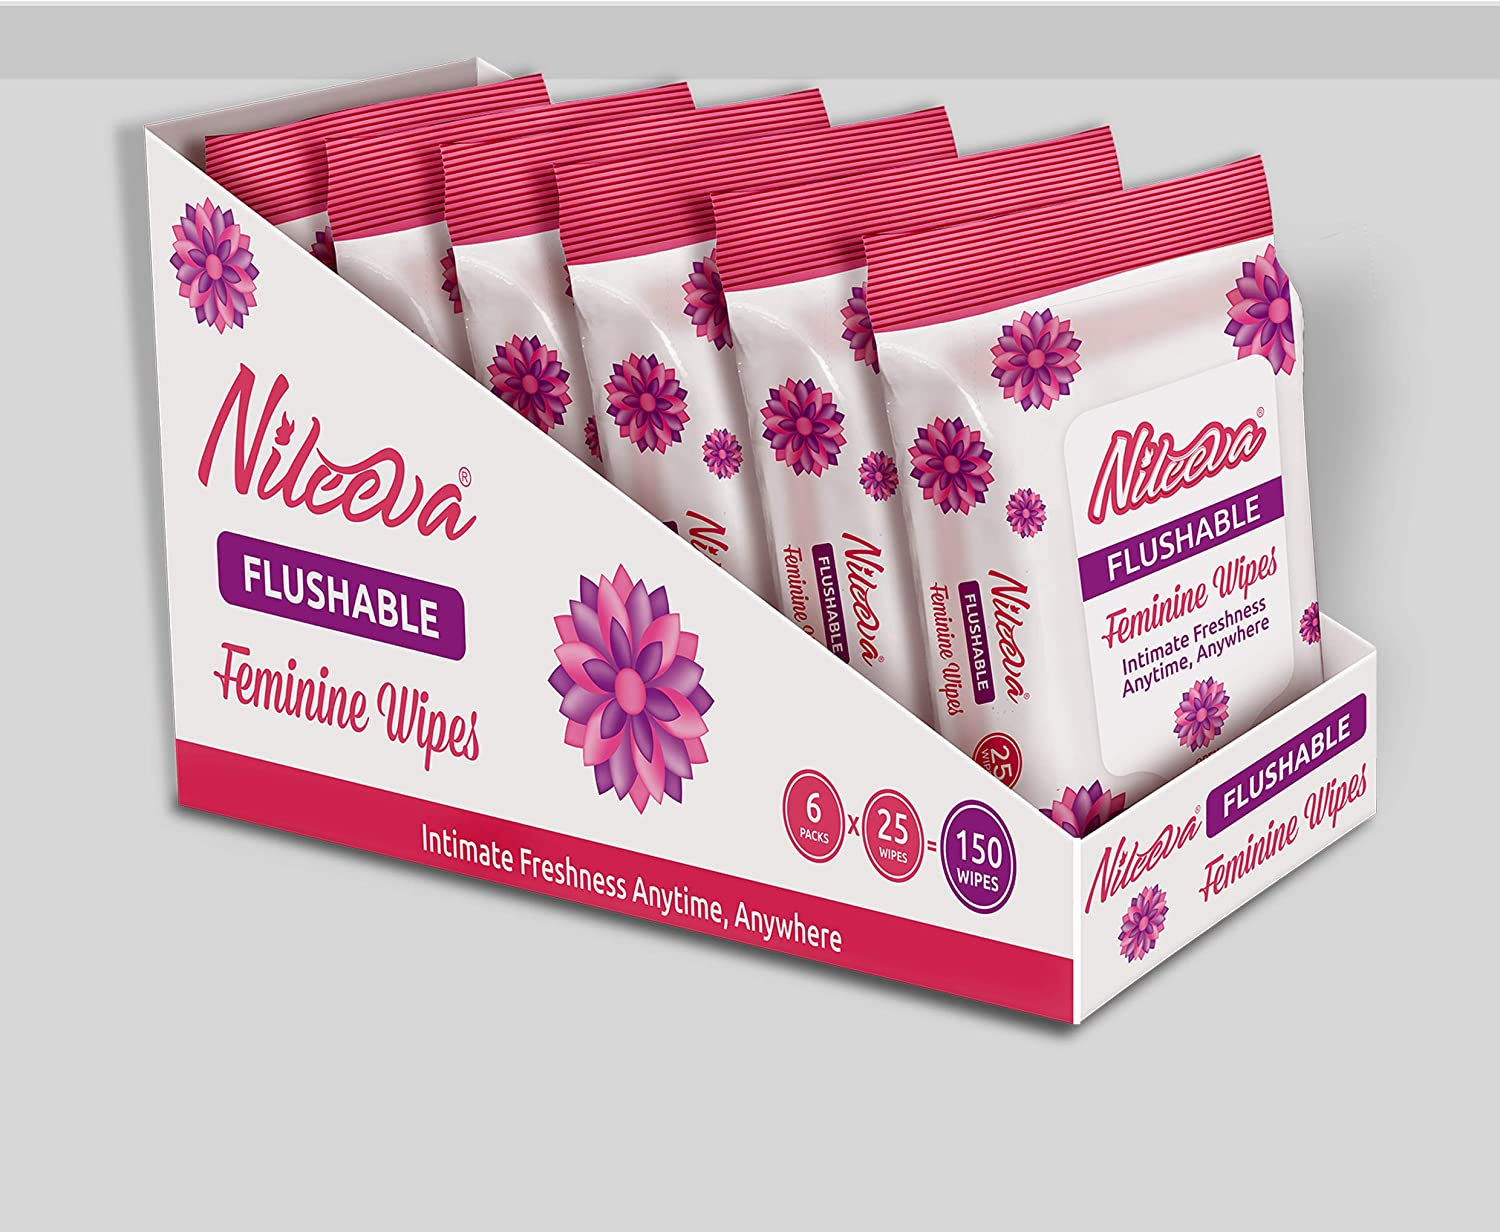 Nileeva Feminine Alcohol Free Cleaning Cloths